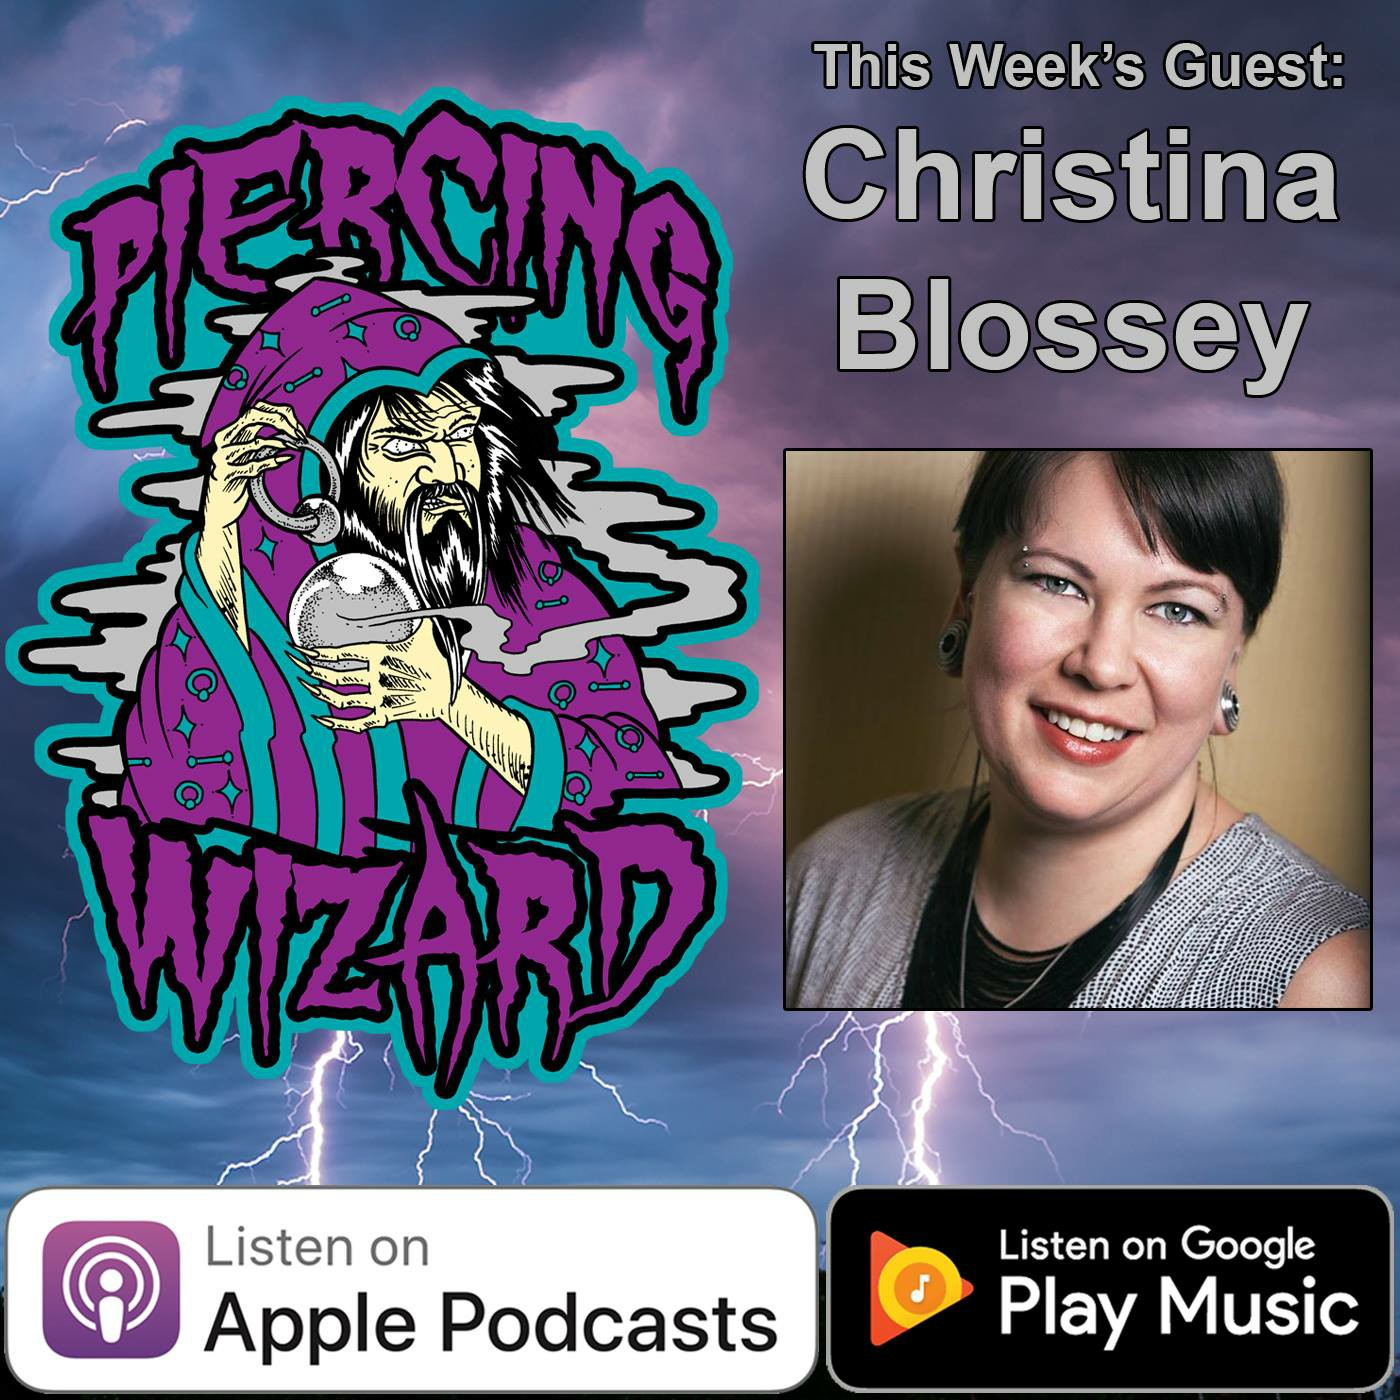 Christina Blossey interviewed by Ryan Ouellette